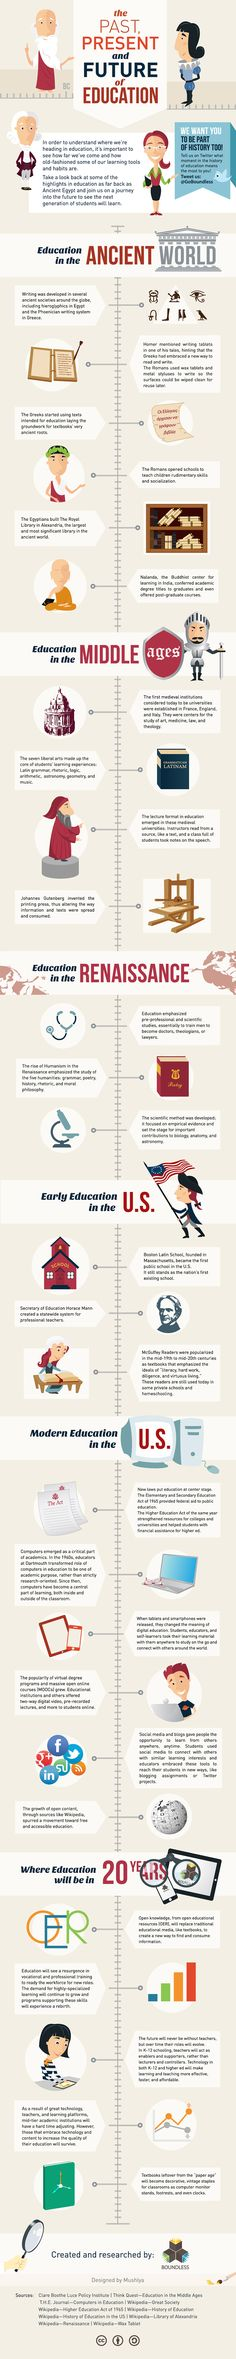 History of Education Infographic by Boundless